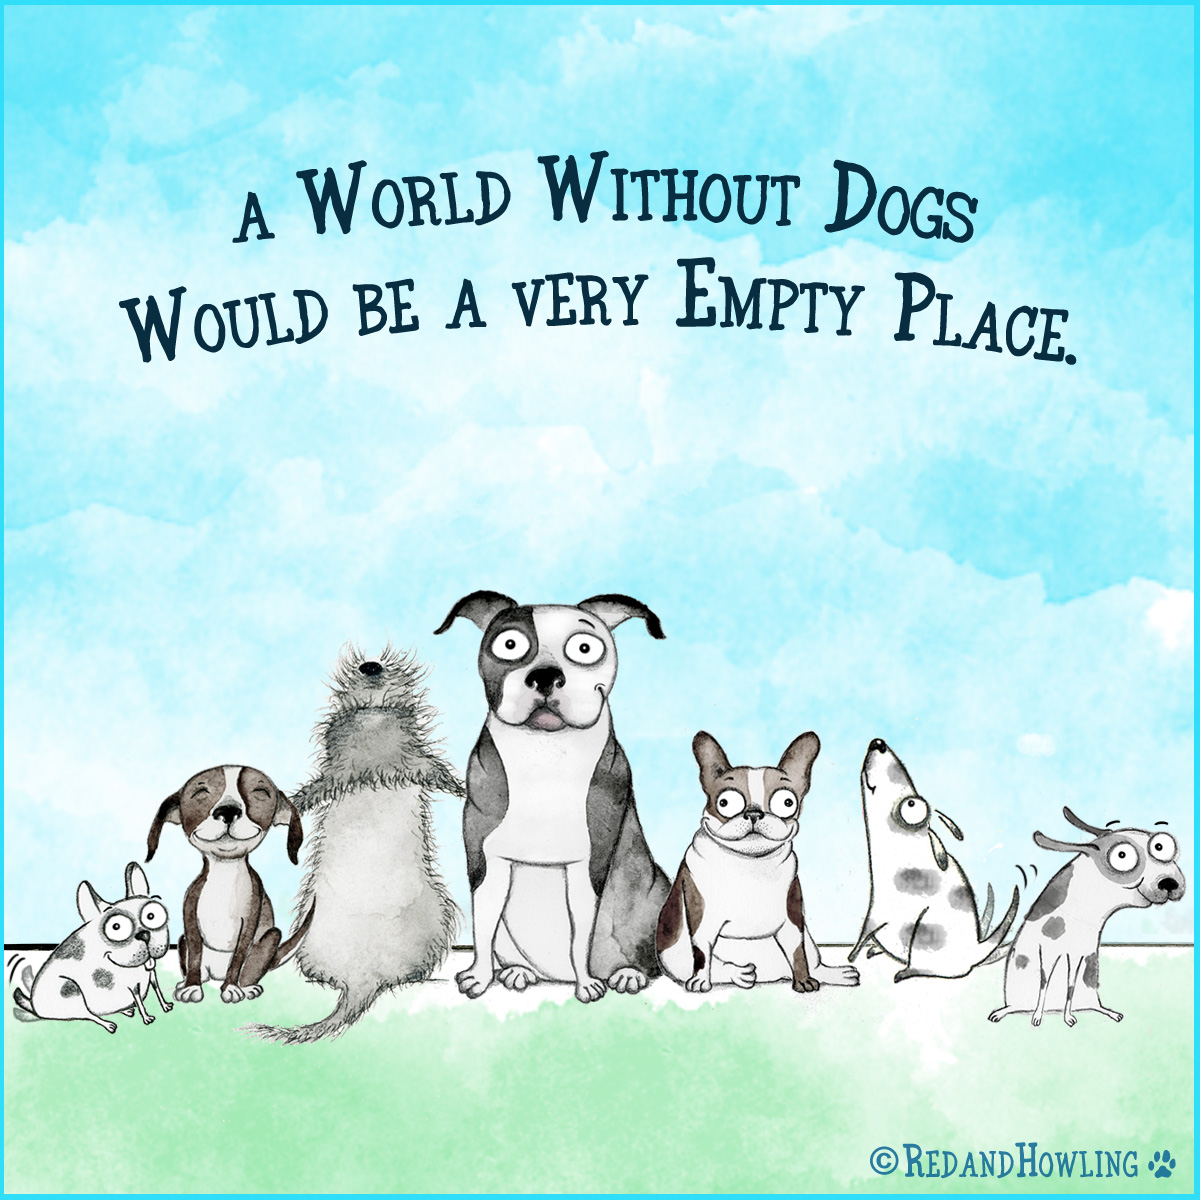 A world without dogs